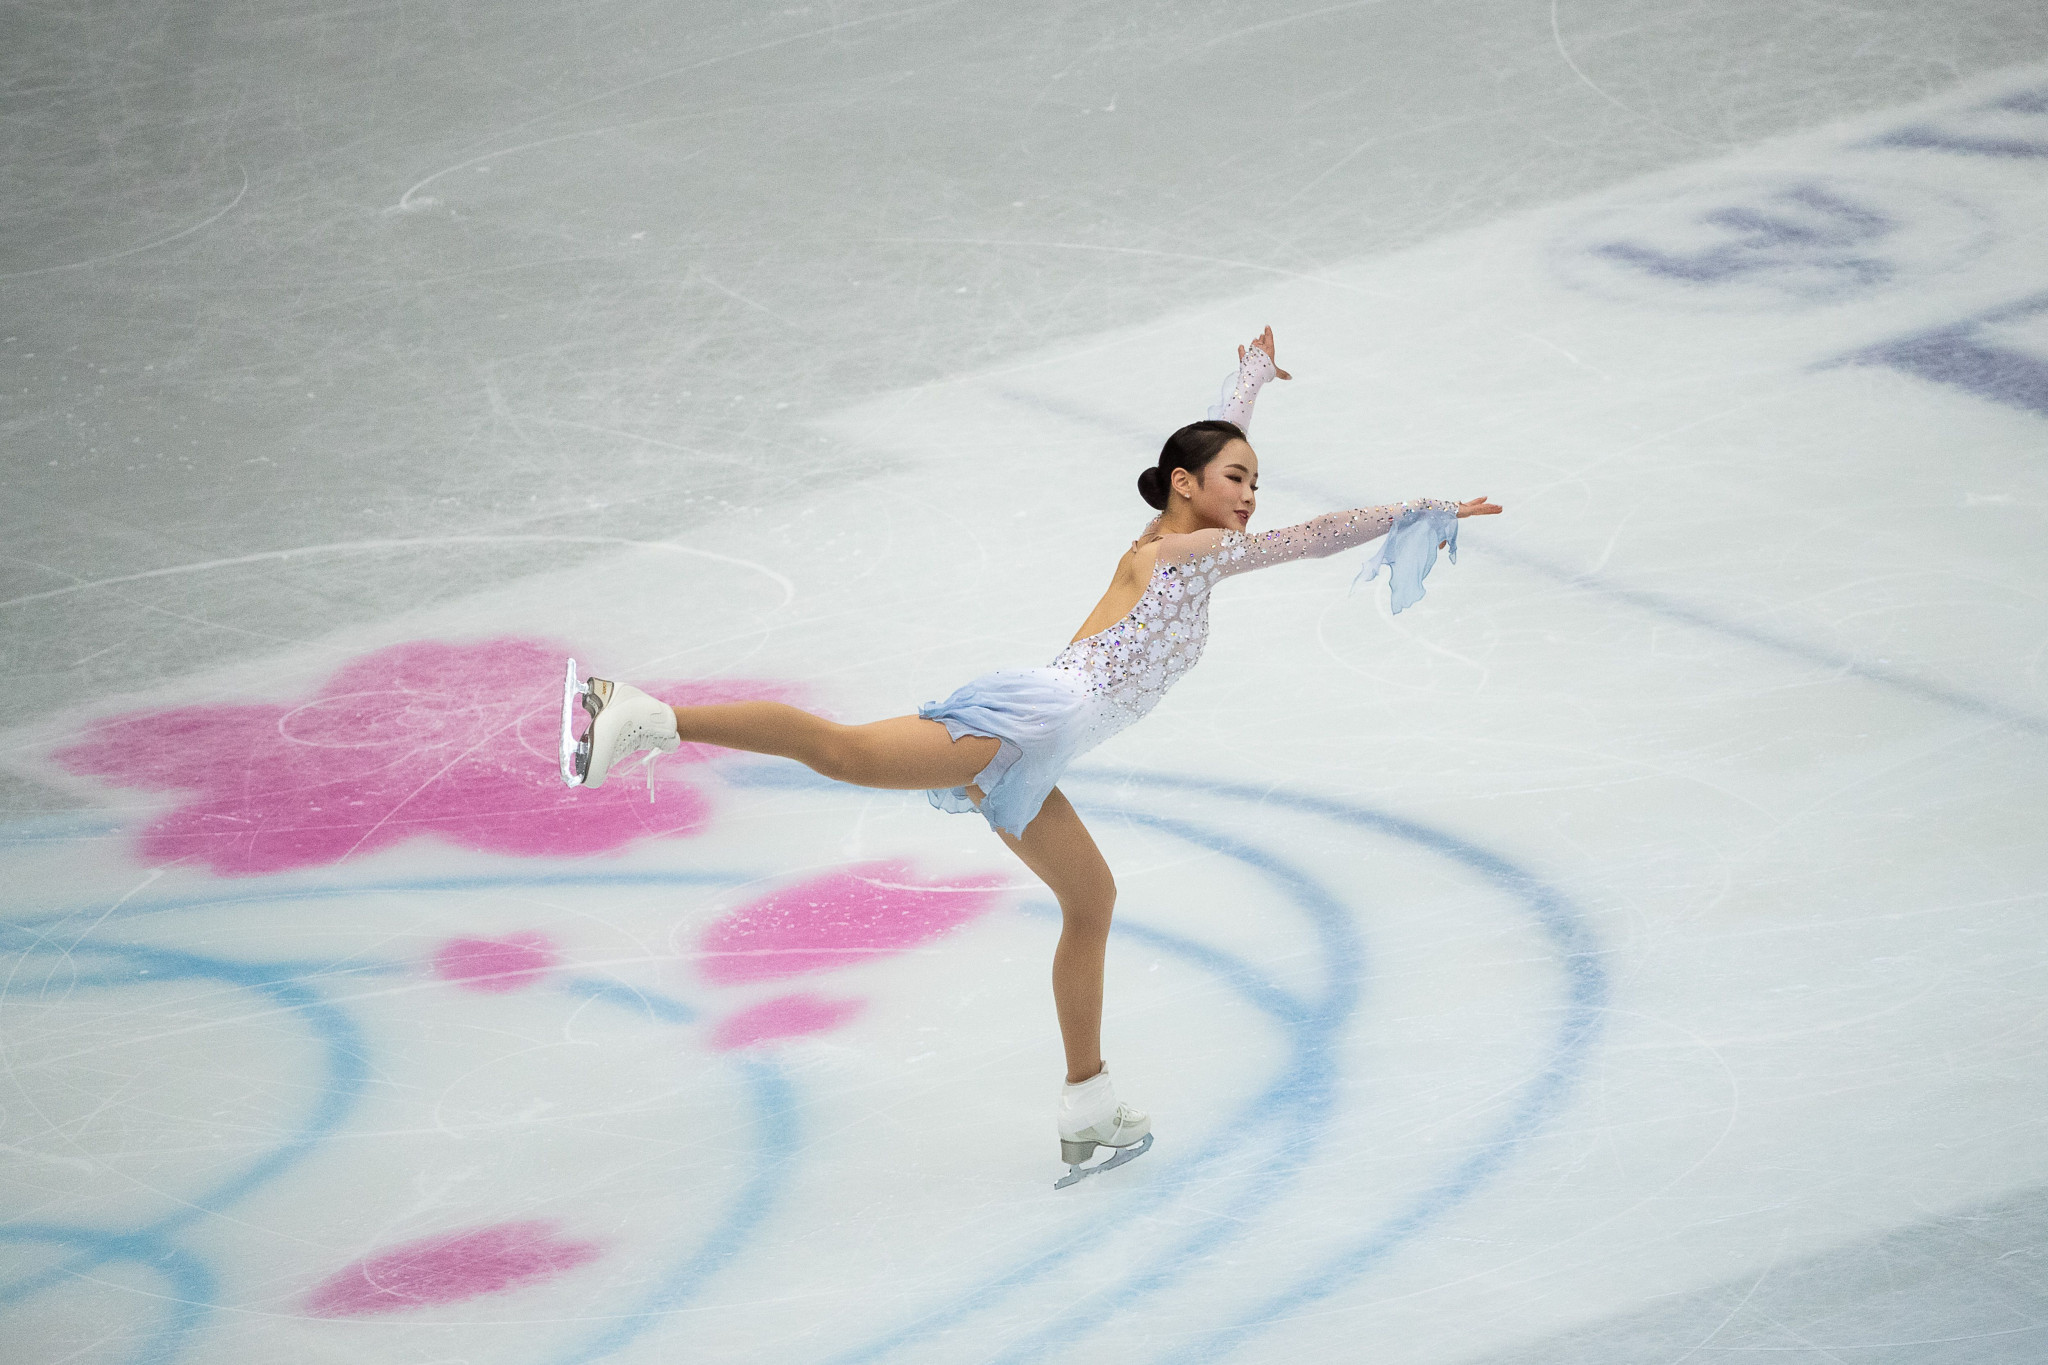 Claims were made that Lim Eun-soo was deliberately injured ©Getty Images